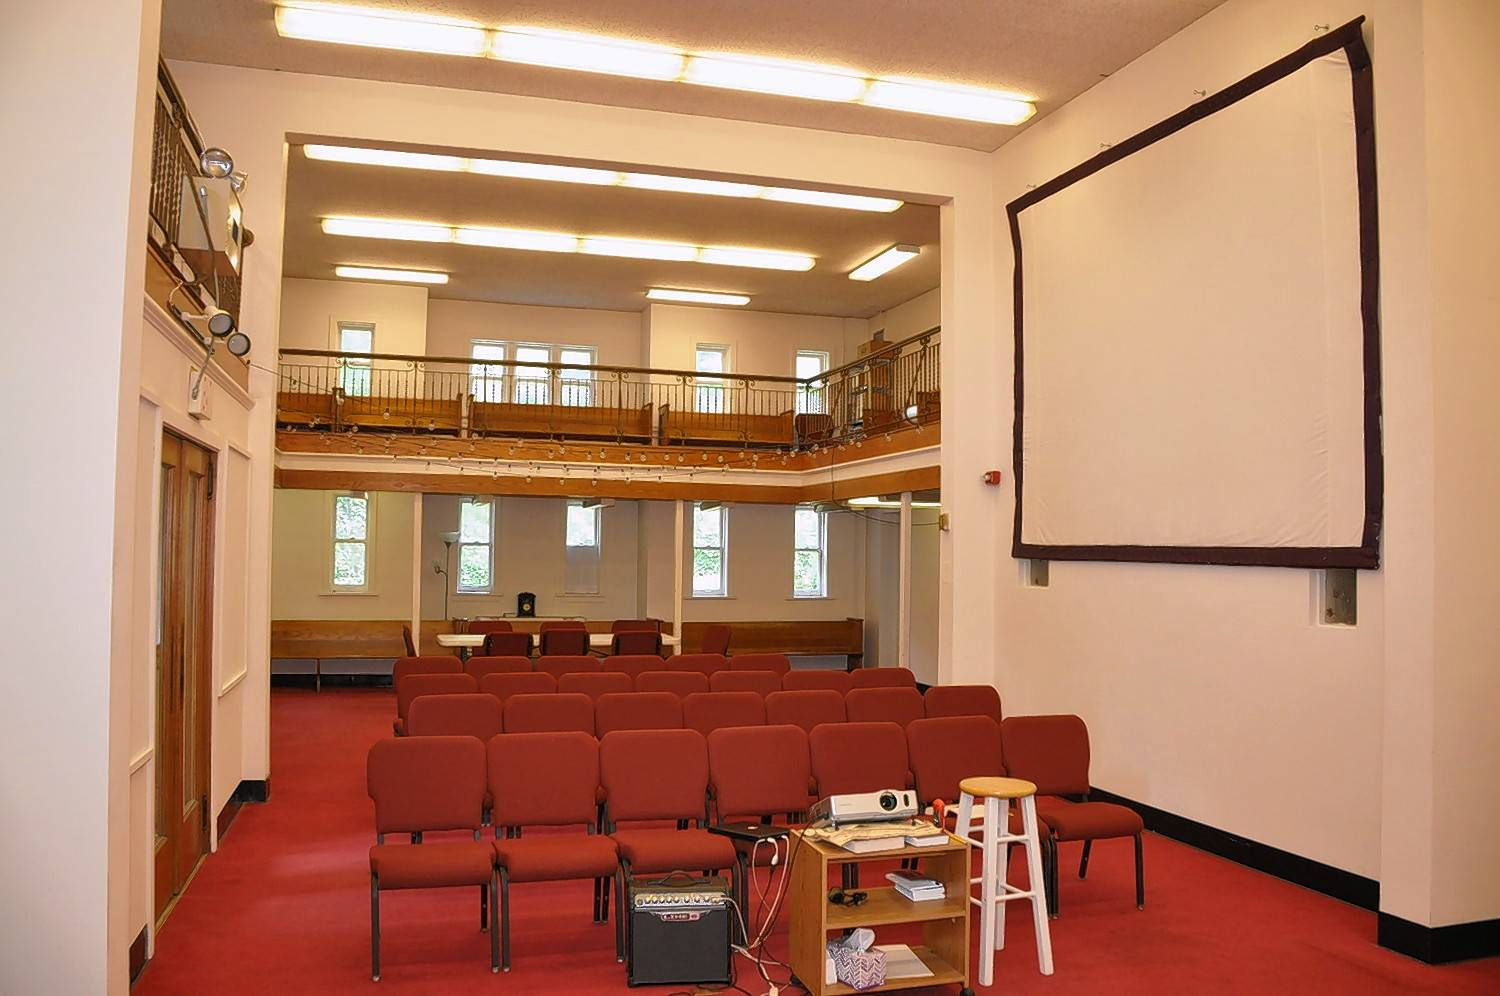 Developer: Naperville's historic Nichols Library isn't what it used to be